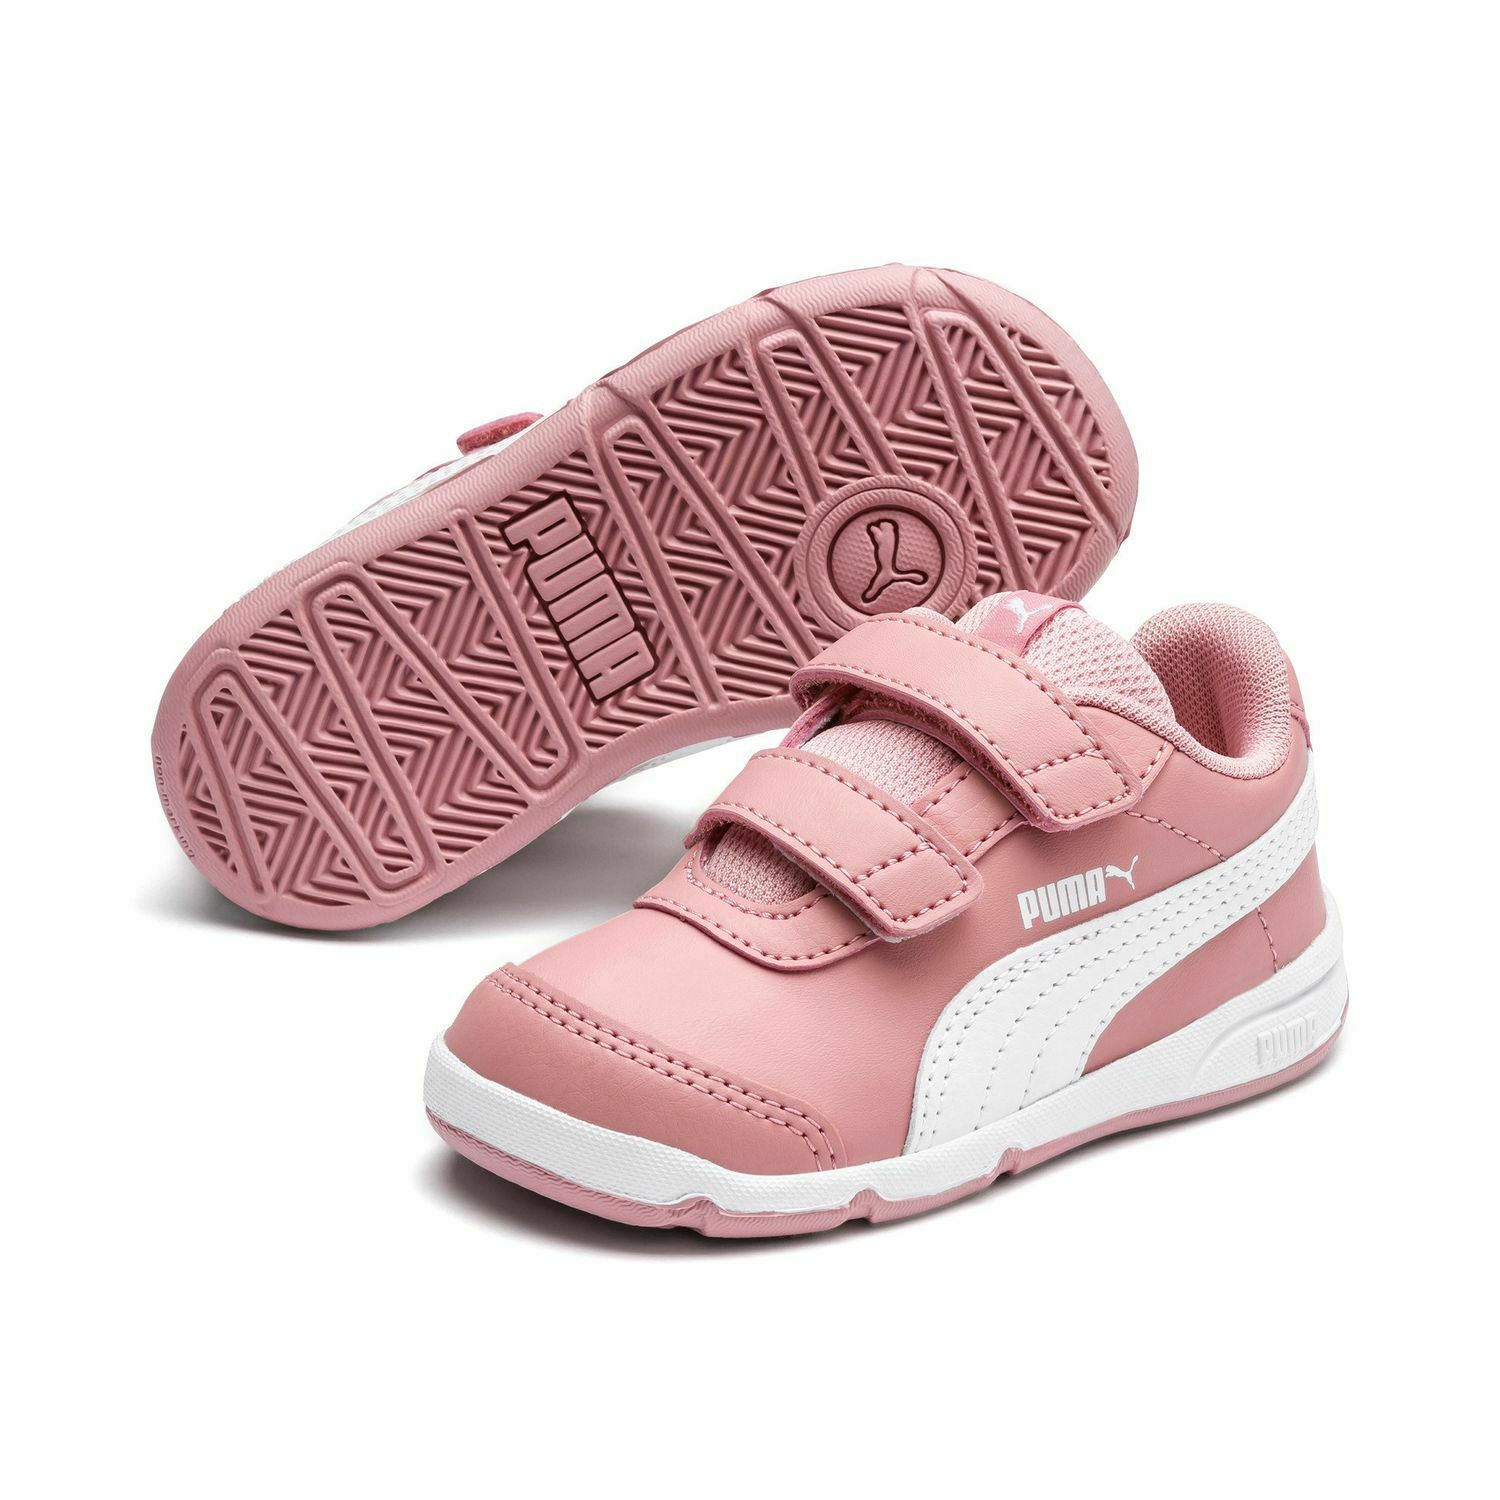 Puma Stepfleex 2 Sl Ve Inf Children Baby Shoes Trainers 192523 Pink